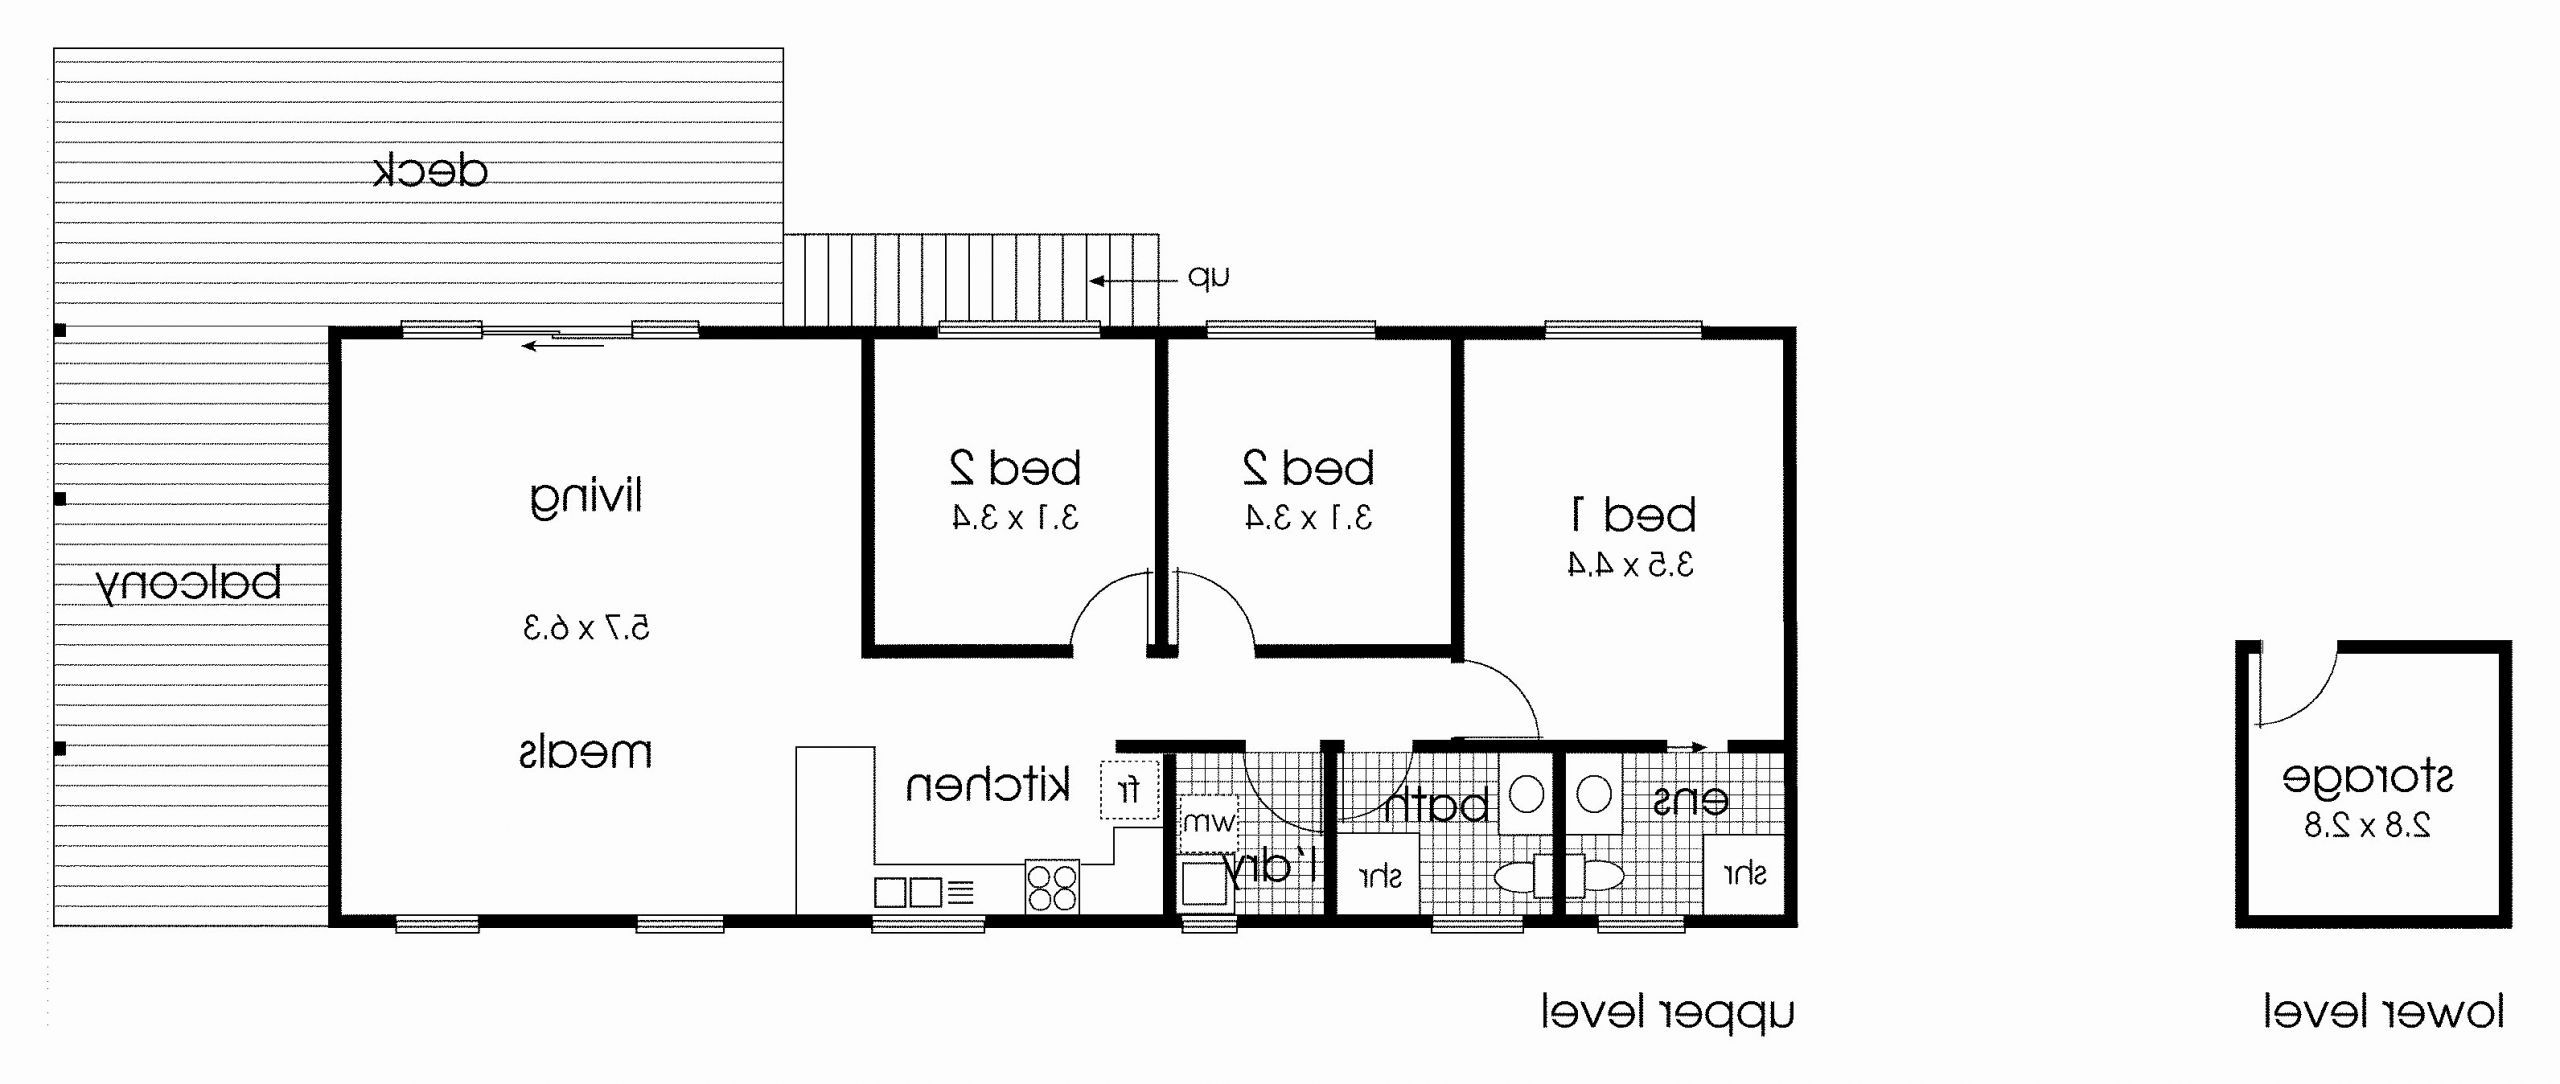 Small House Kits 21 Awesome Awesome Tiny House Design Plans Cabin Floor Plans Free House Plans Floor Plan Design